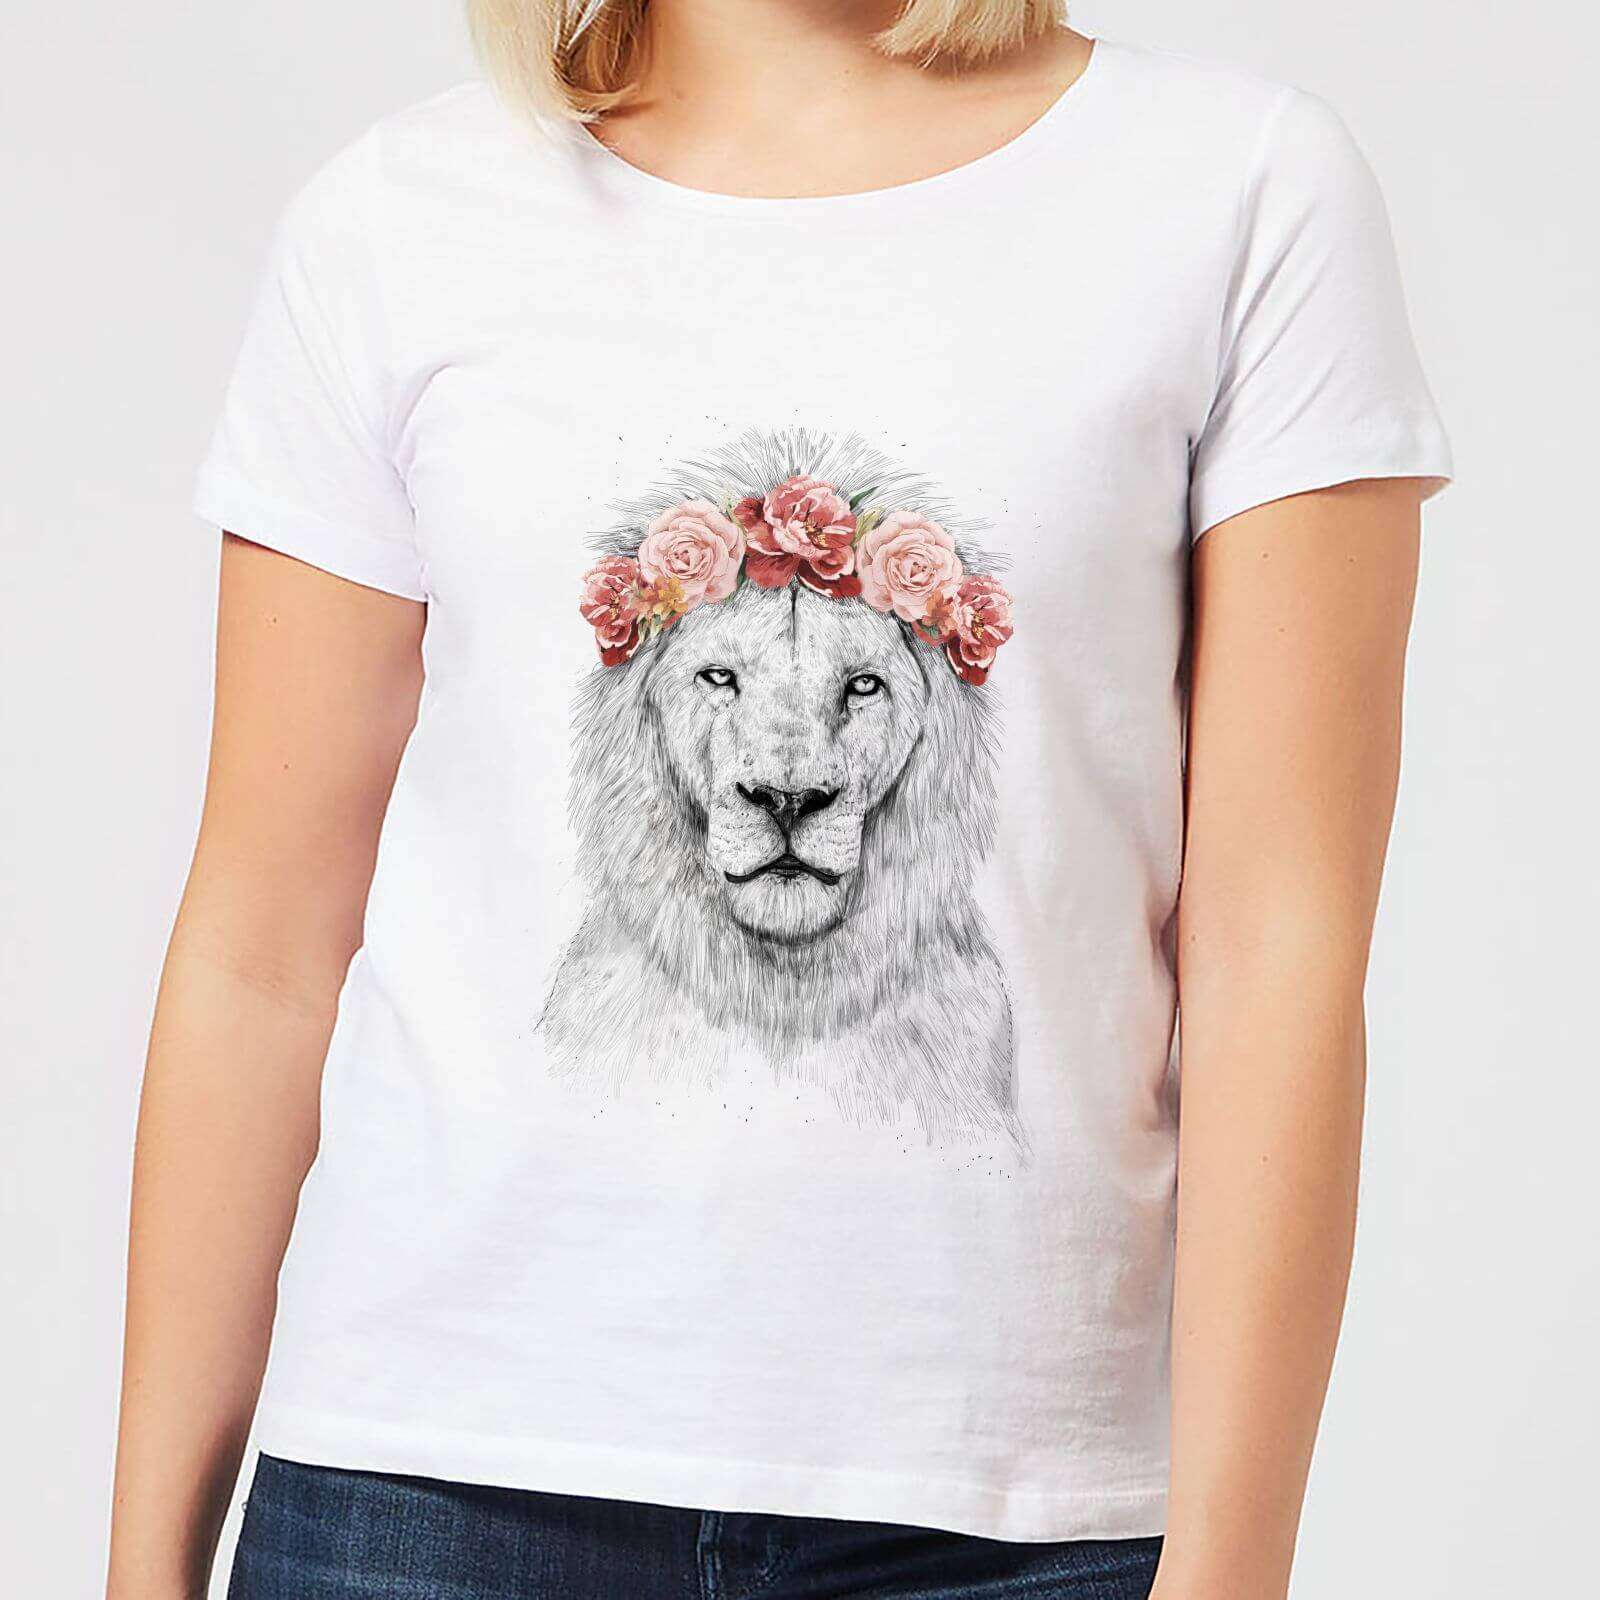 Balazs Solti Lion And Flowers Women's T-Shirt - White - S - White